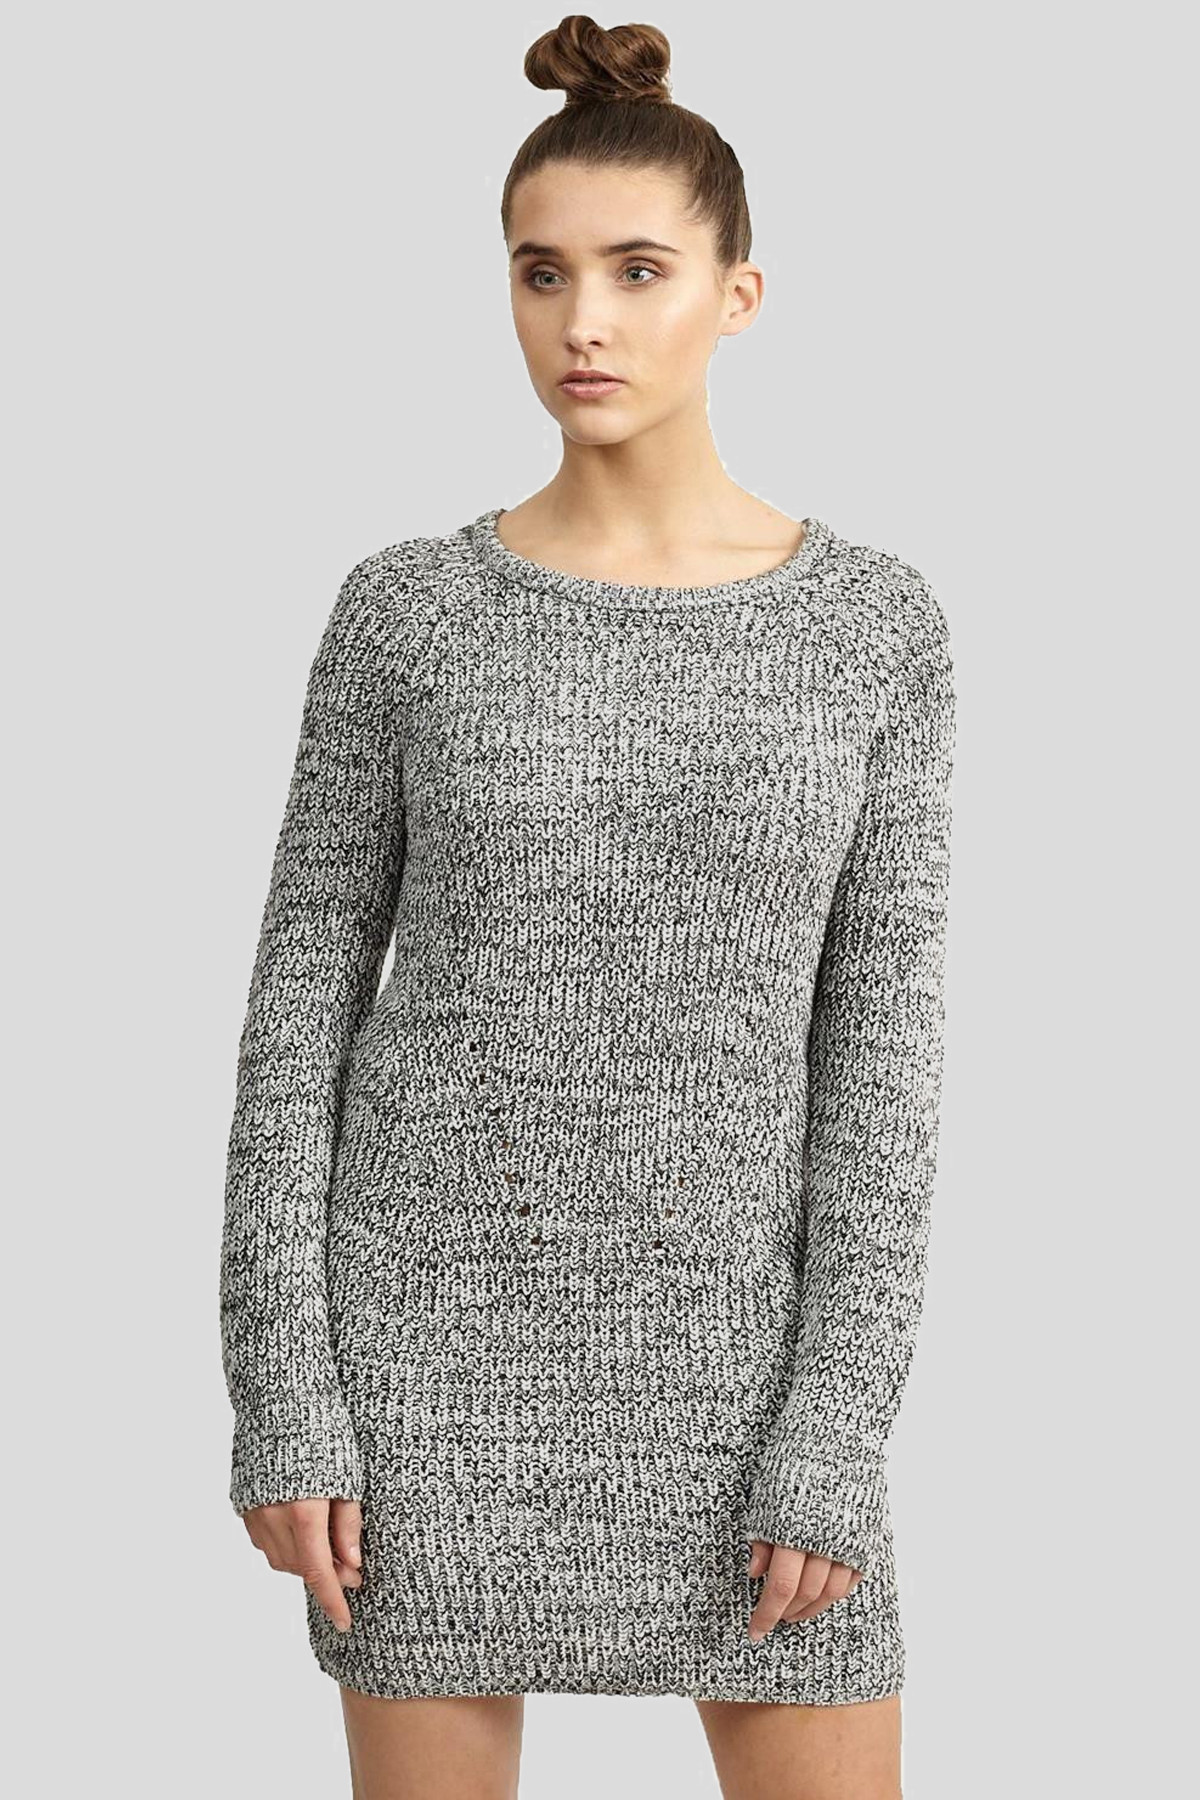 New Ladies Ribbed Thermal Winter Knitwear Pullover Jumper Sweater Dress 18-24